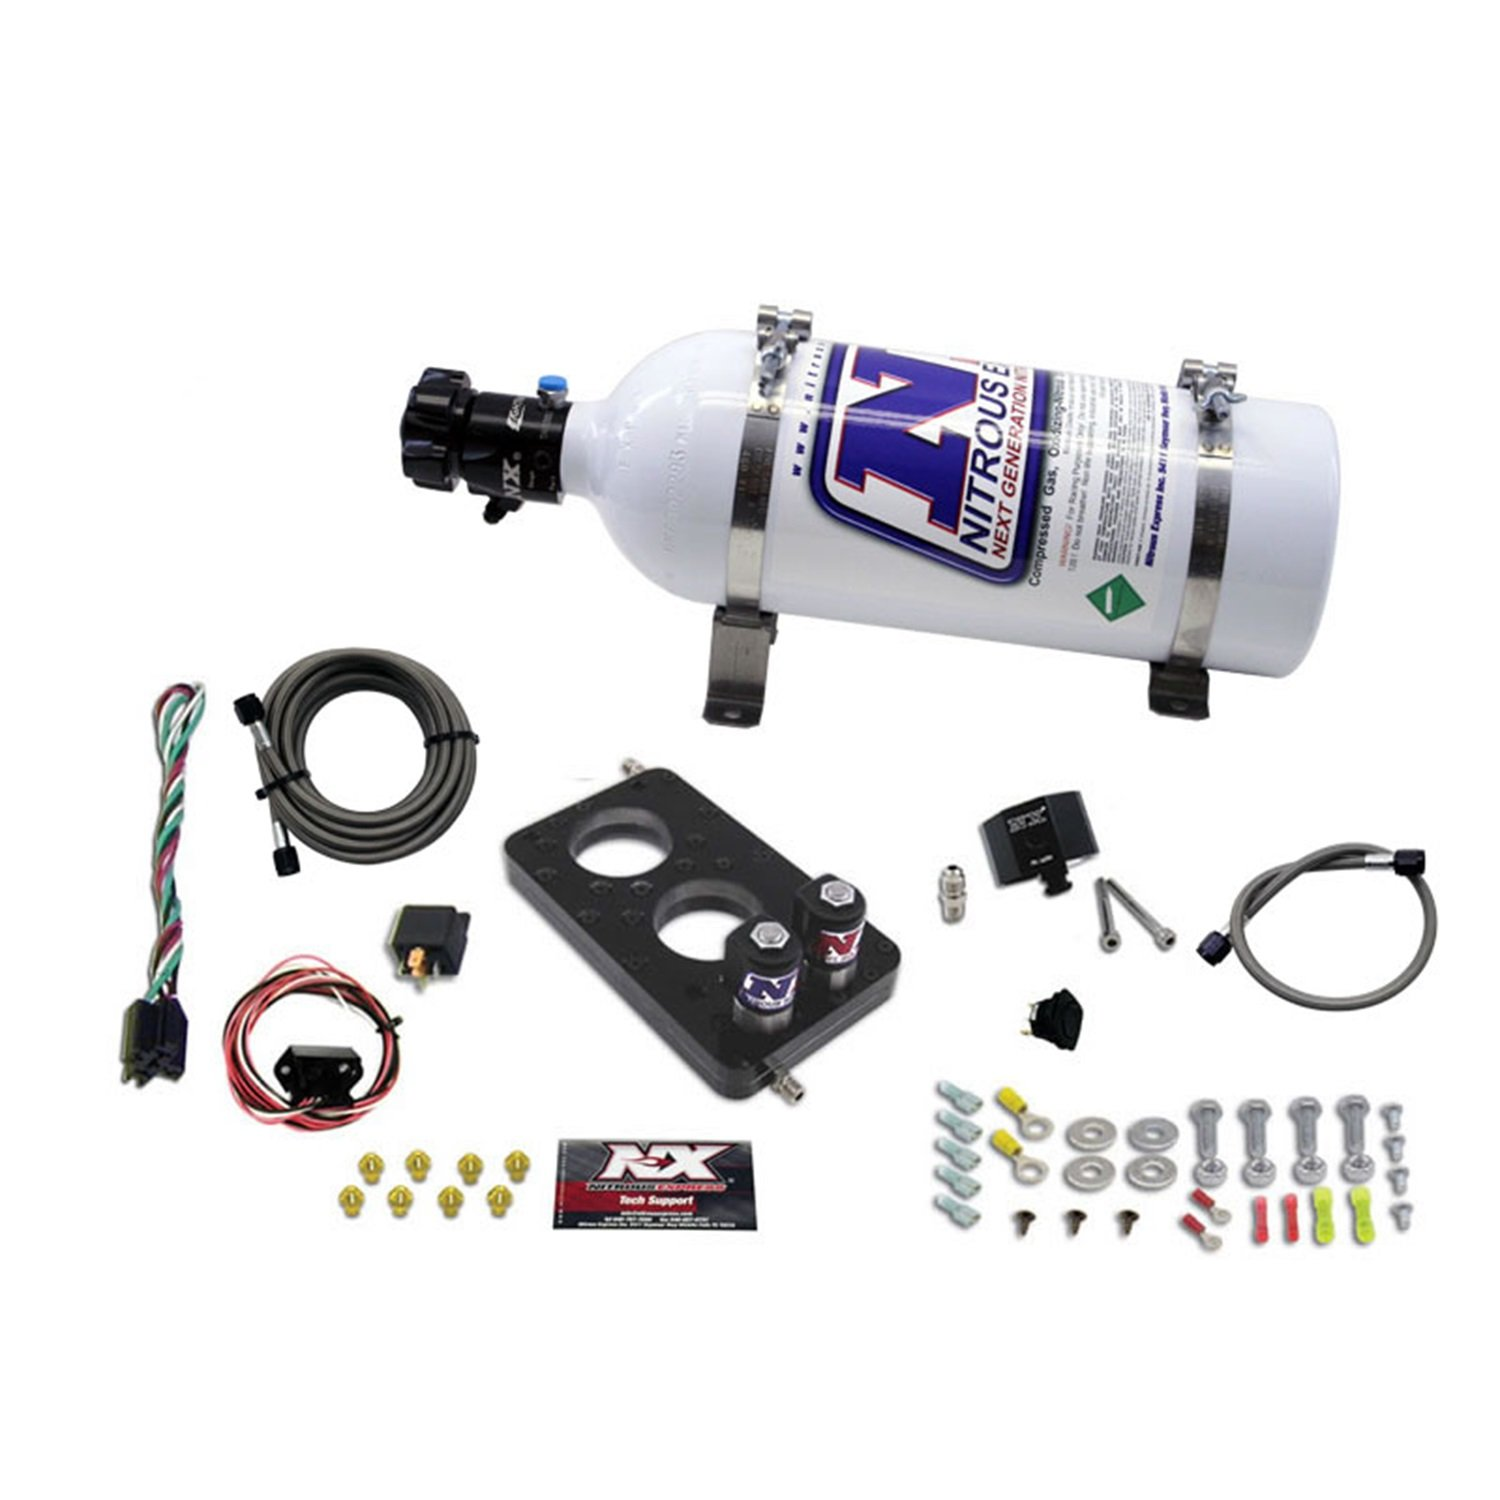 Nitrous Express 20947-05 50-150 HP 3-Valve Plate System with 5 lbs. Bottle for Ford 4.6L Engine